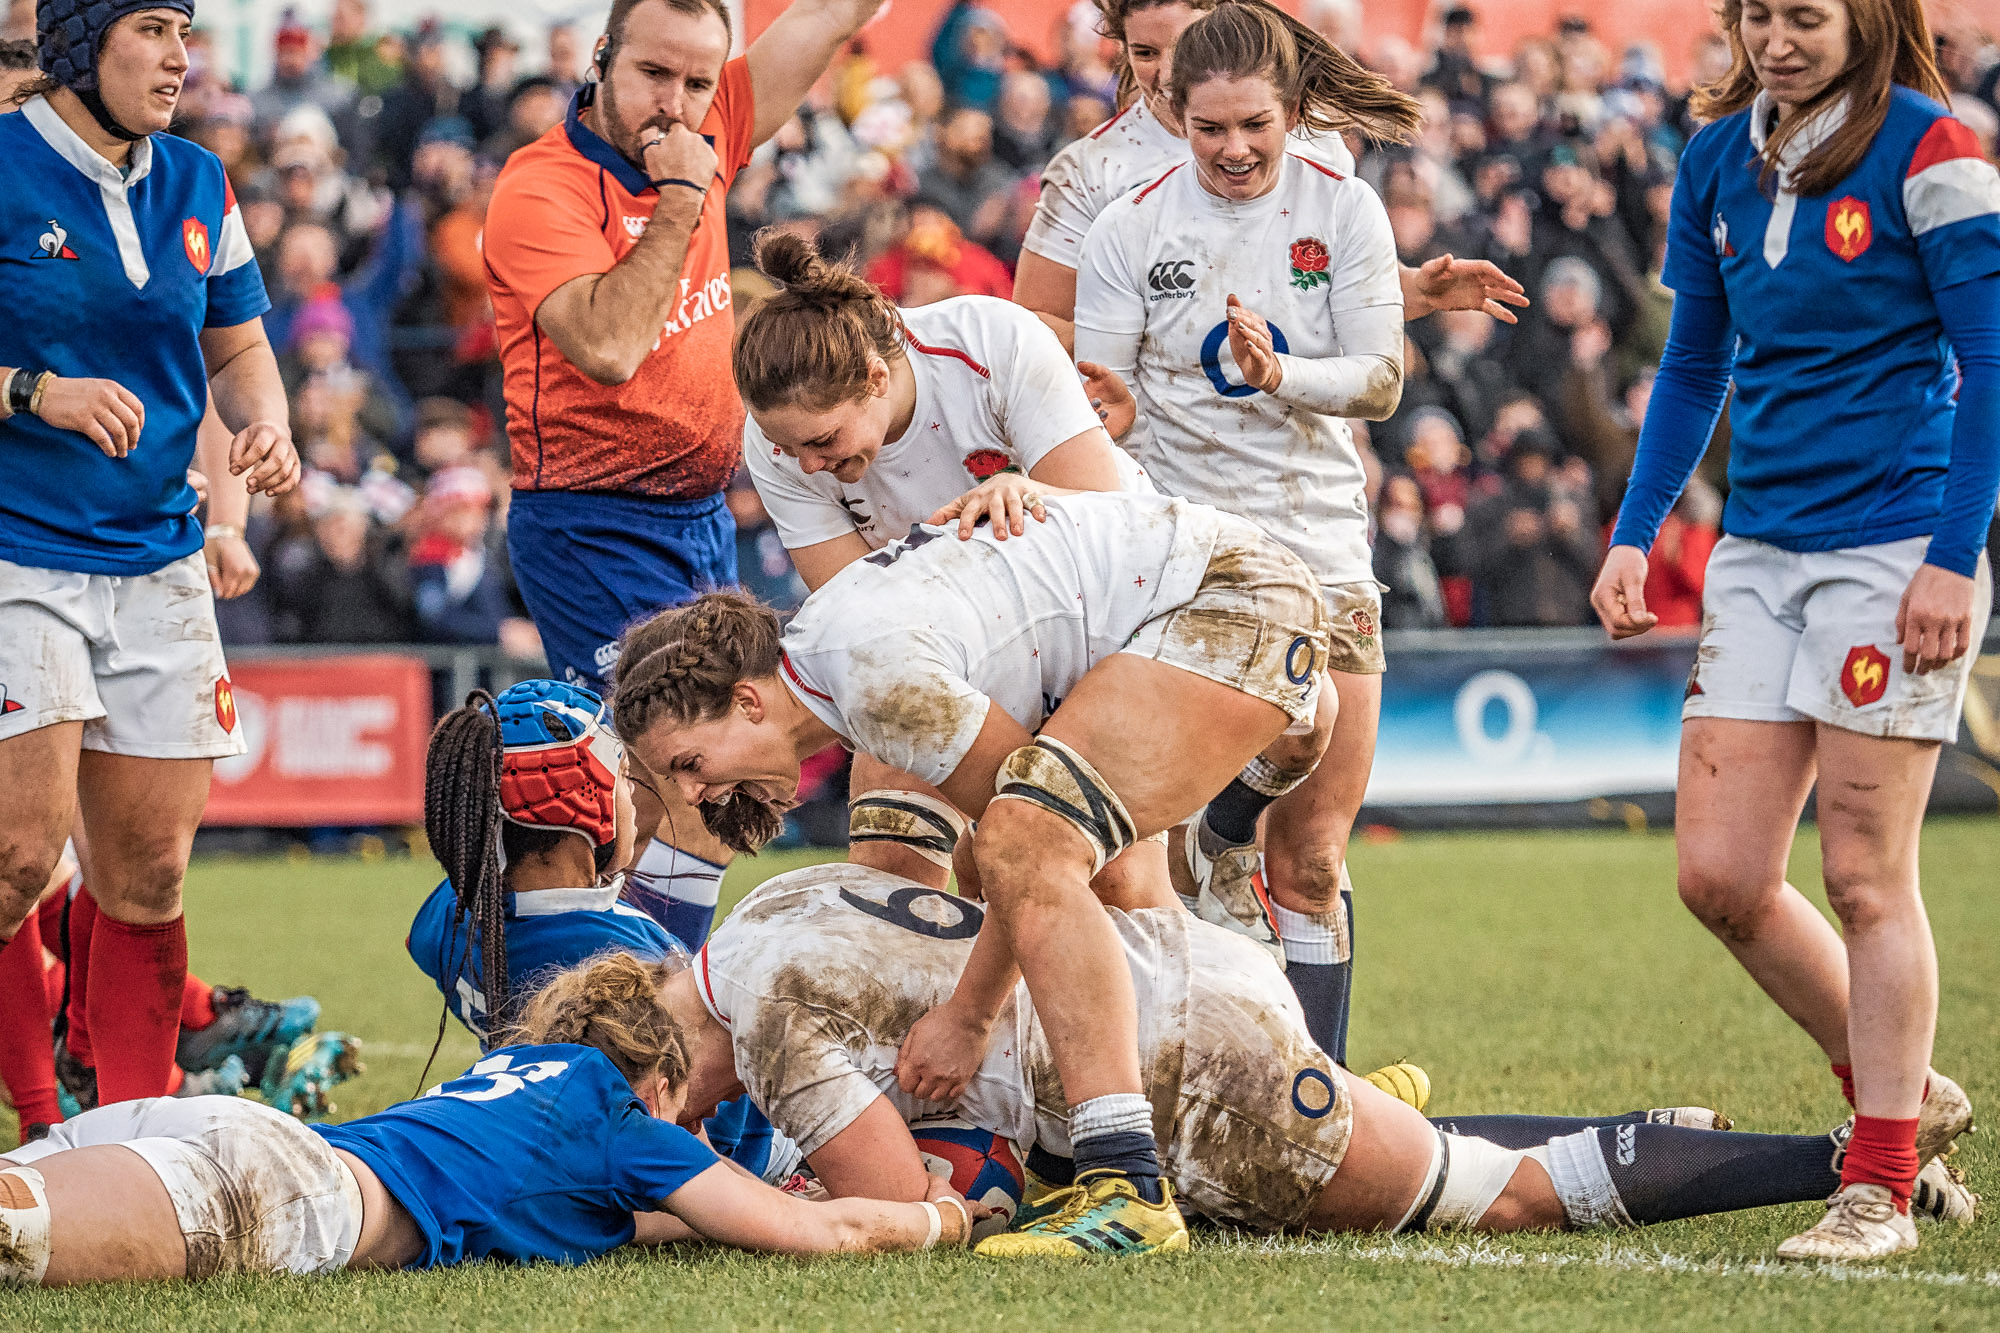 A try for Poppy Cleall. A photographer from Getty Images must have been sitting right next to me as they have almost the same shot. This one's mine, honest!